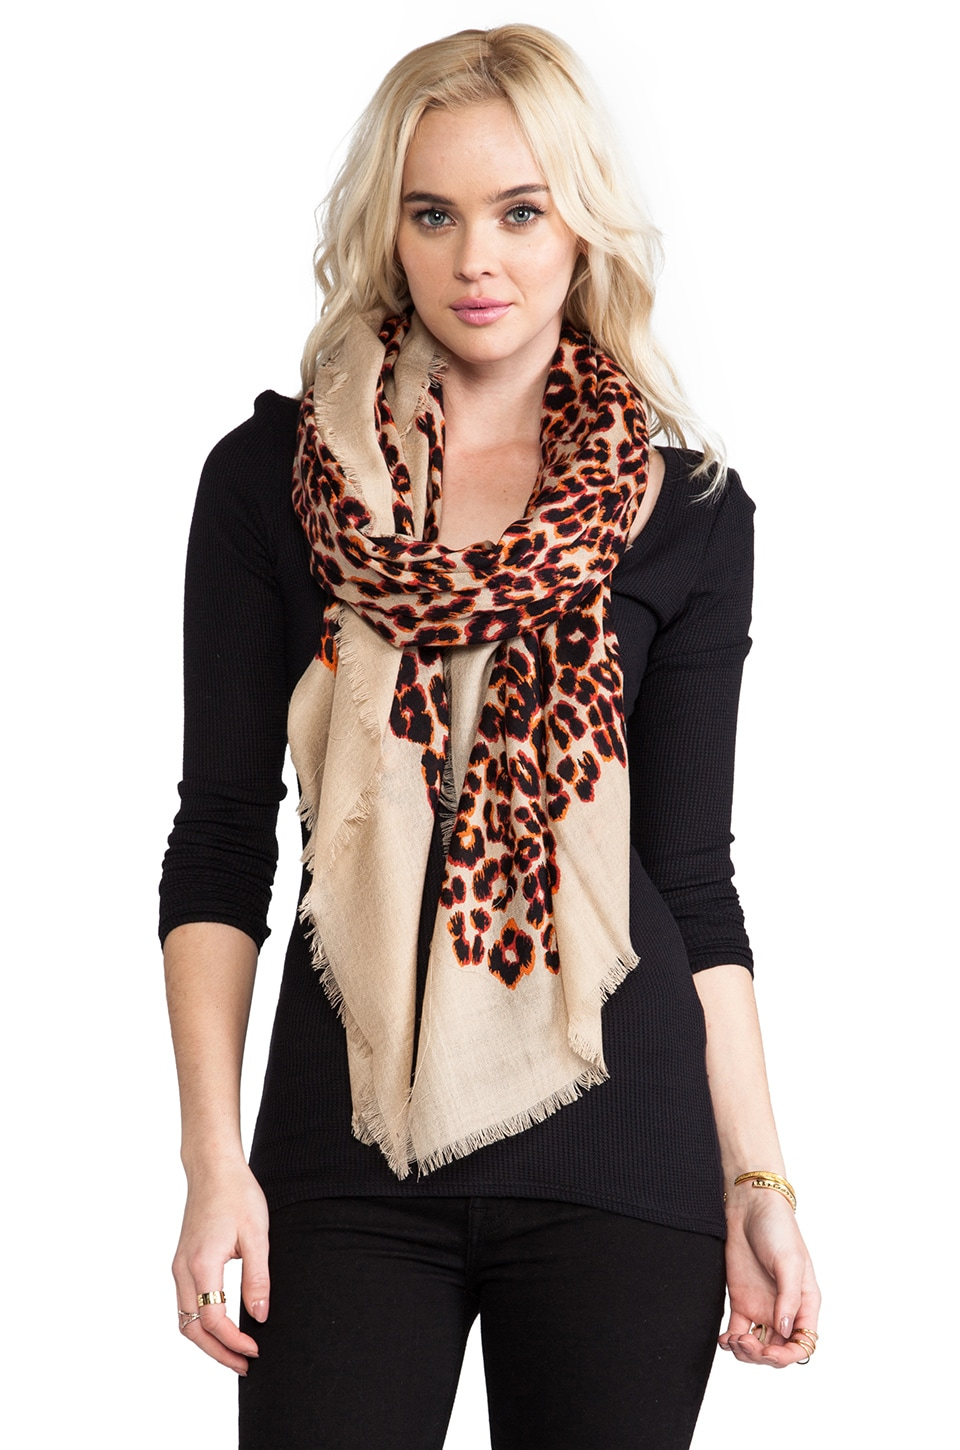 Juicy Couture Leopard Scarf in Neutral Pop